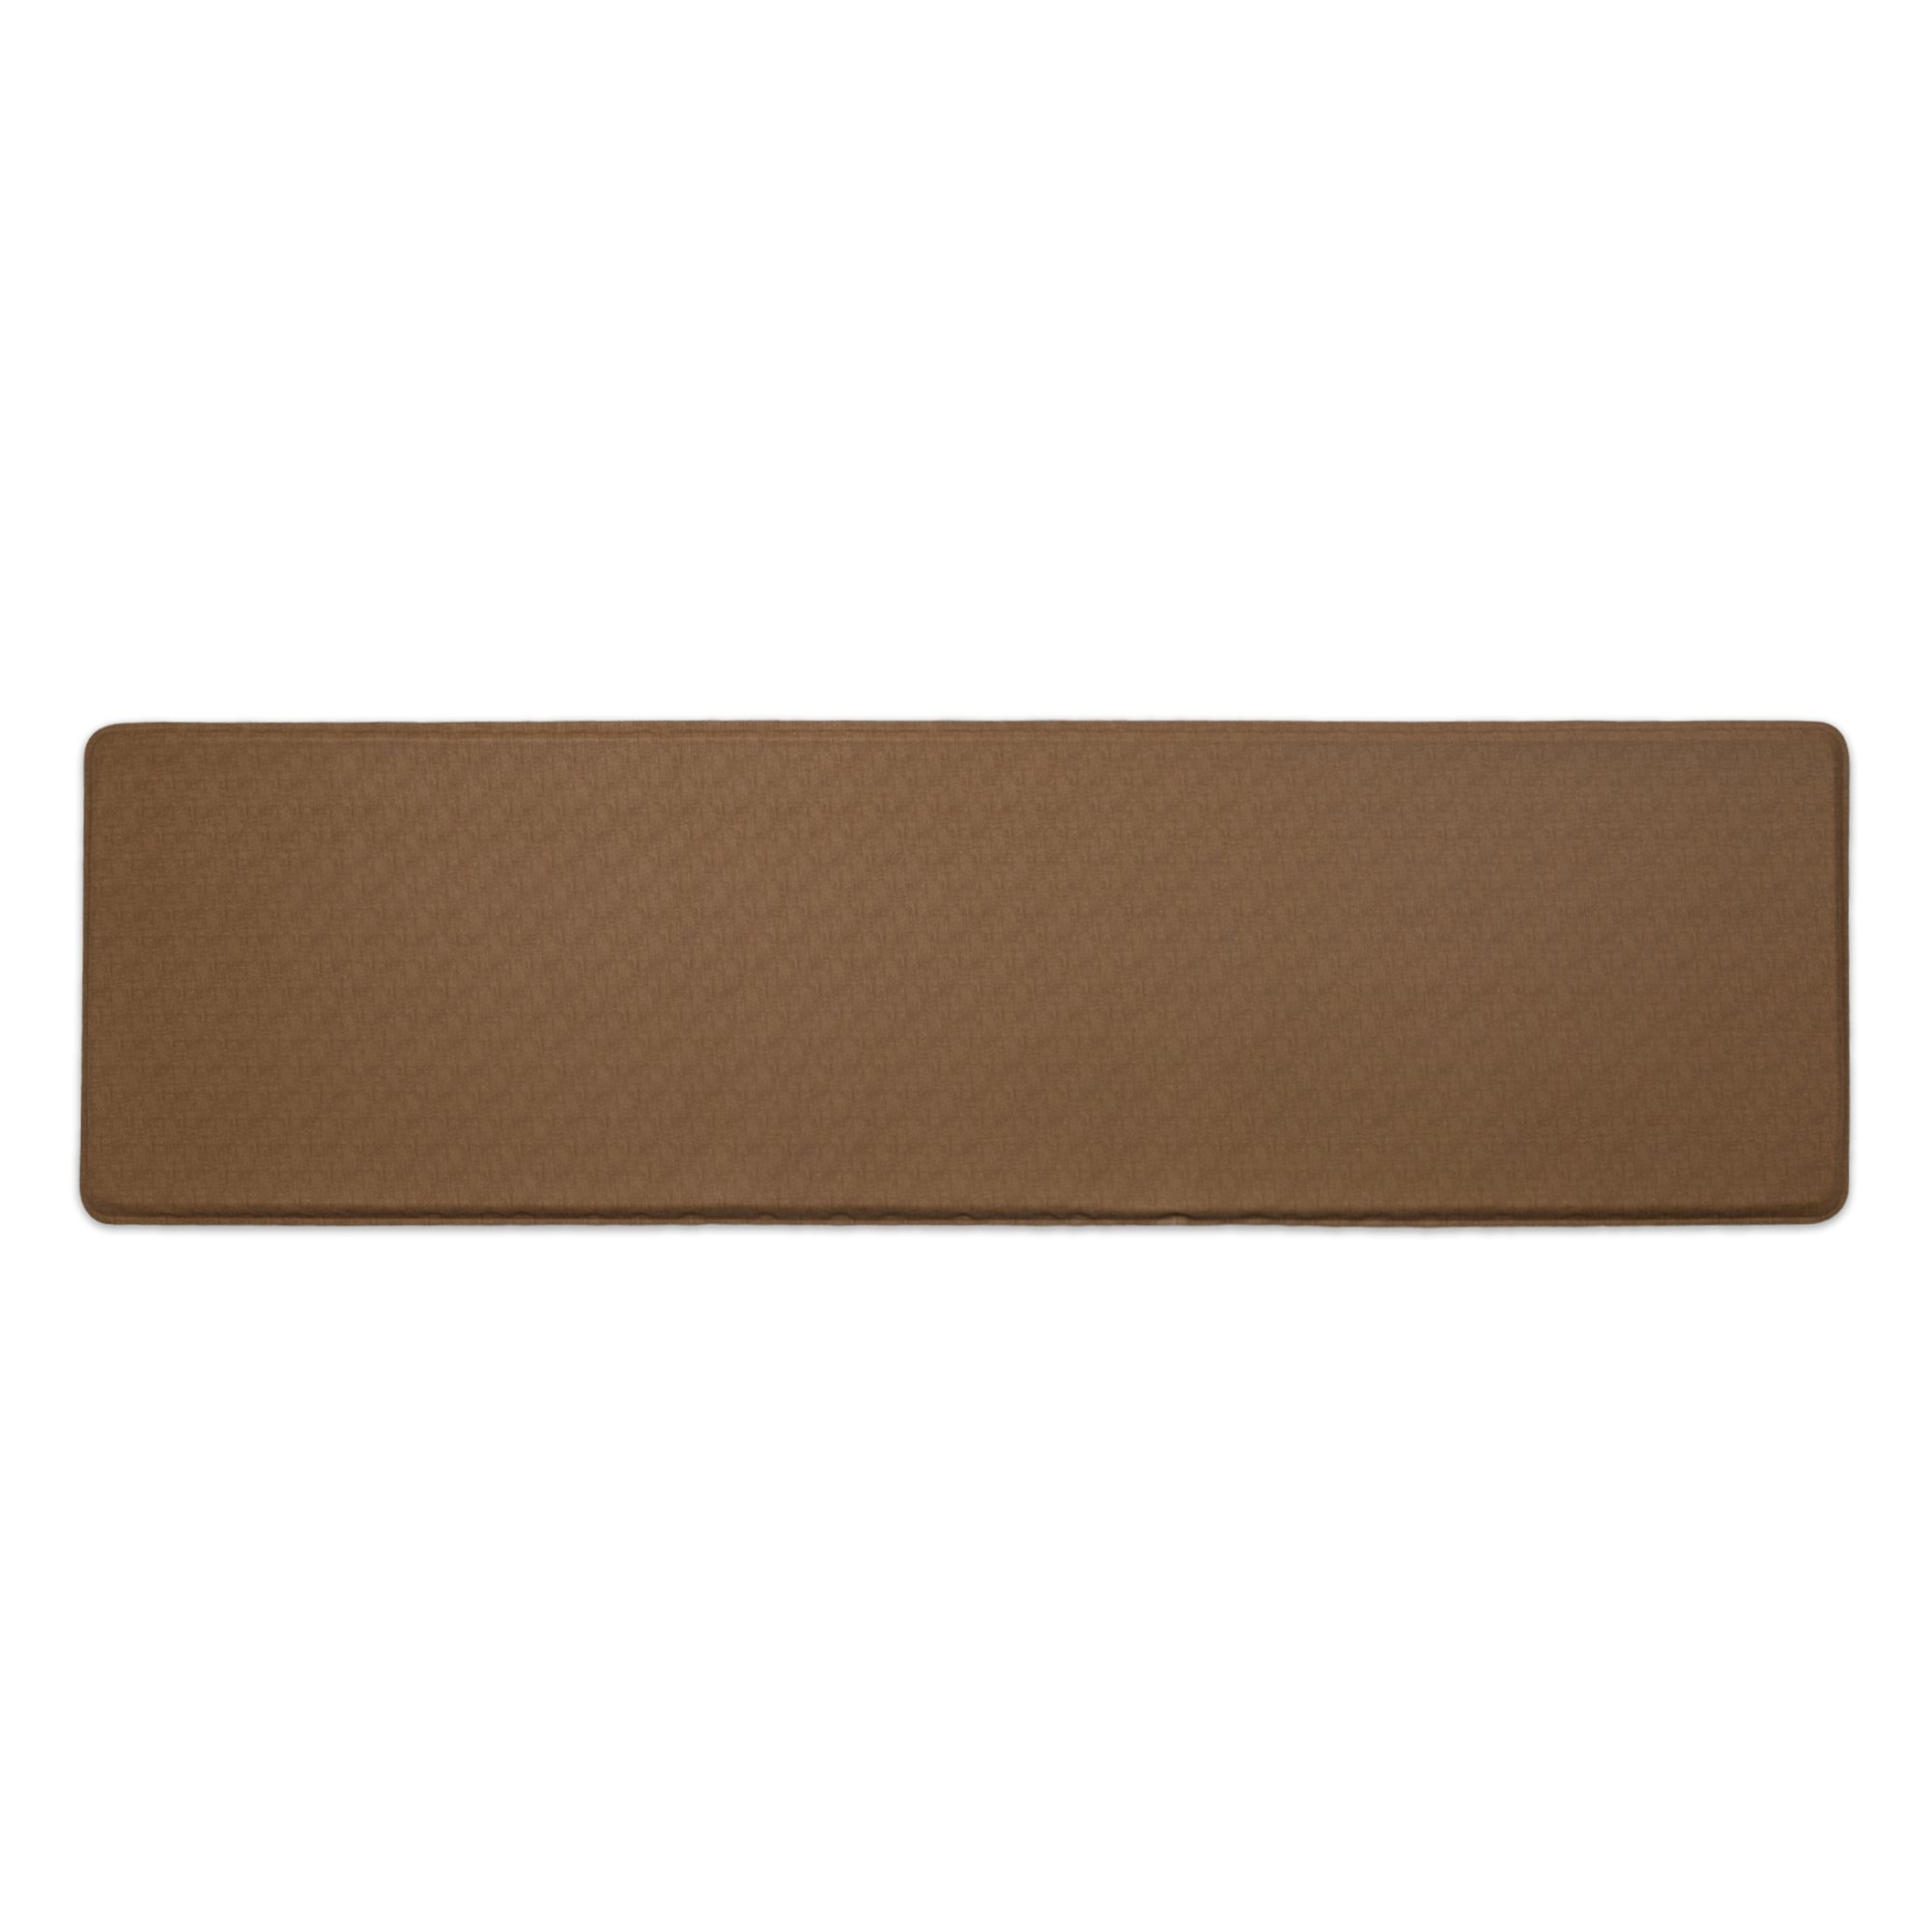 """GelPro Classic Anti-Fatigue Kitchen Comfort Chef Floor Mat, 20x72"""", Linen Khaki Stain Resistant Surface with ½"""" gel core for health & wellness"""